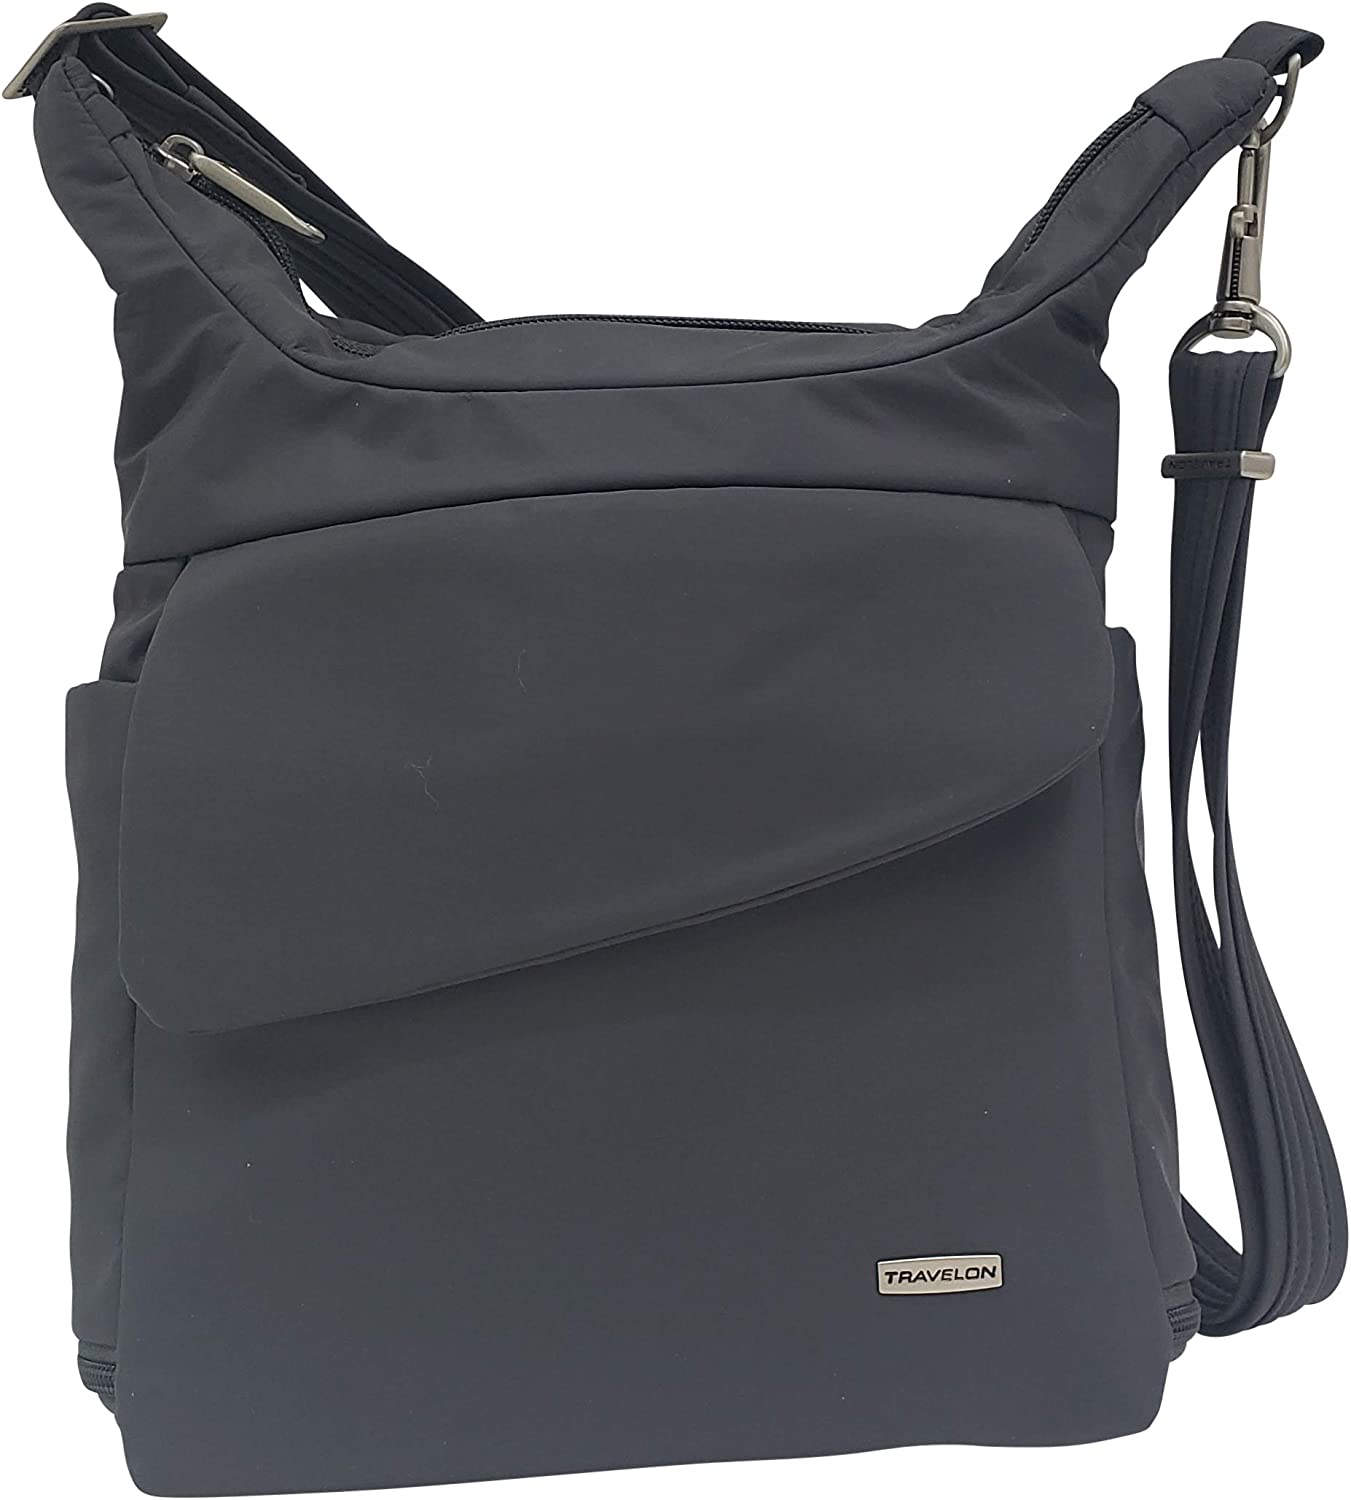 Travelon Anti-Theft Messenger Bag (Graphite)